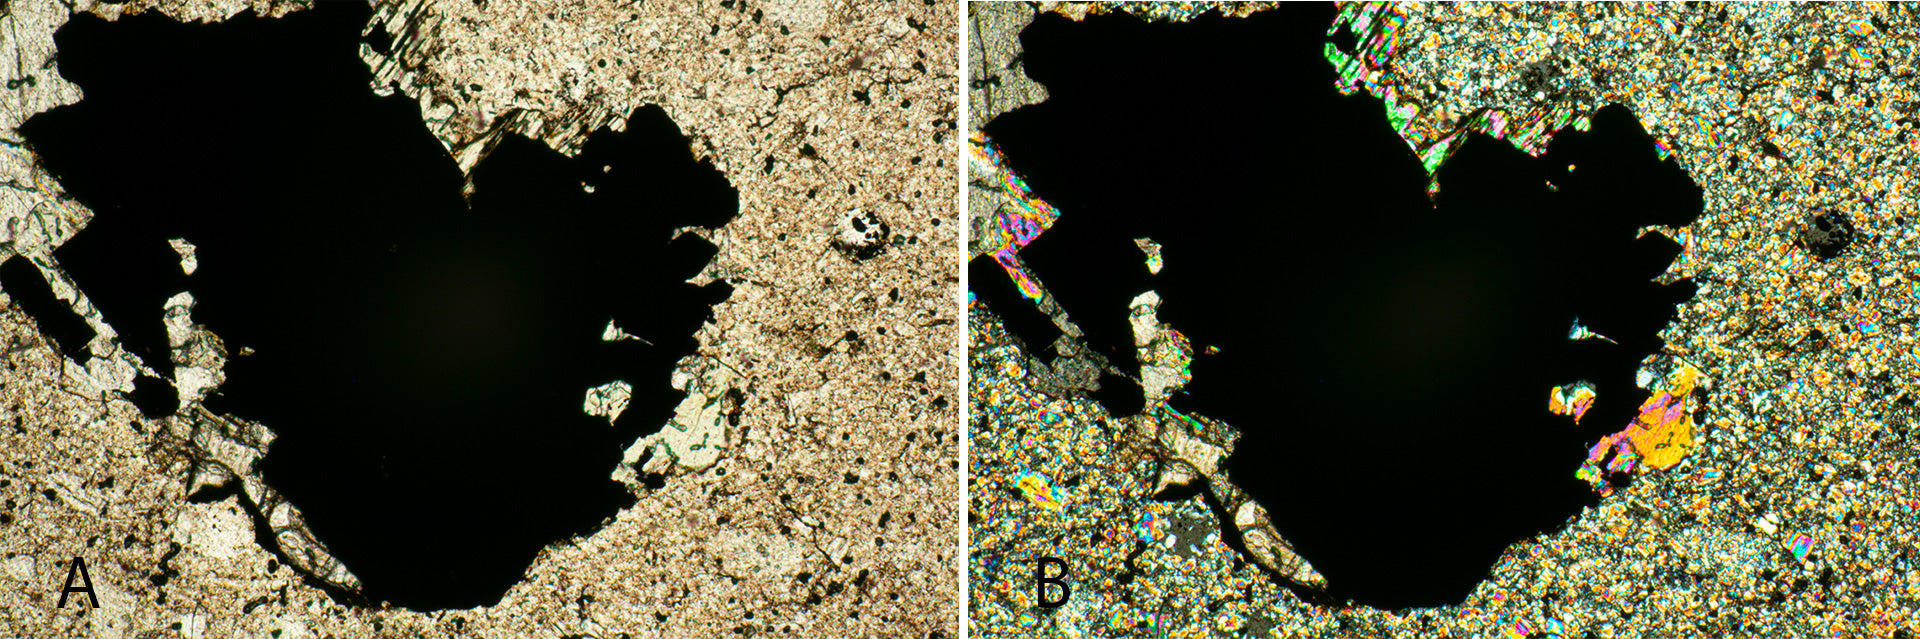 Mineral Section in Bright Field Microscopy